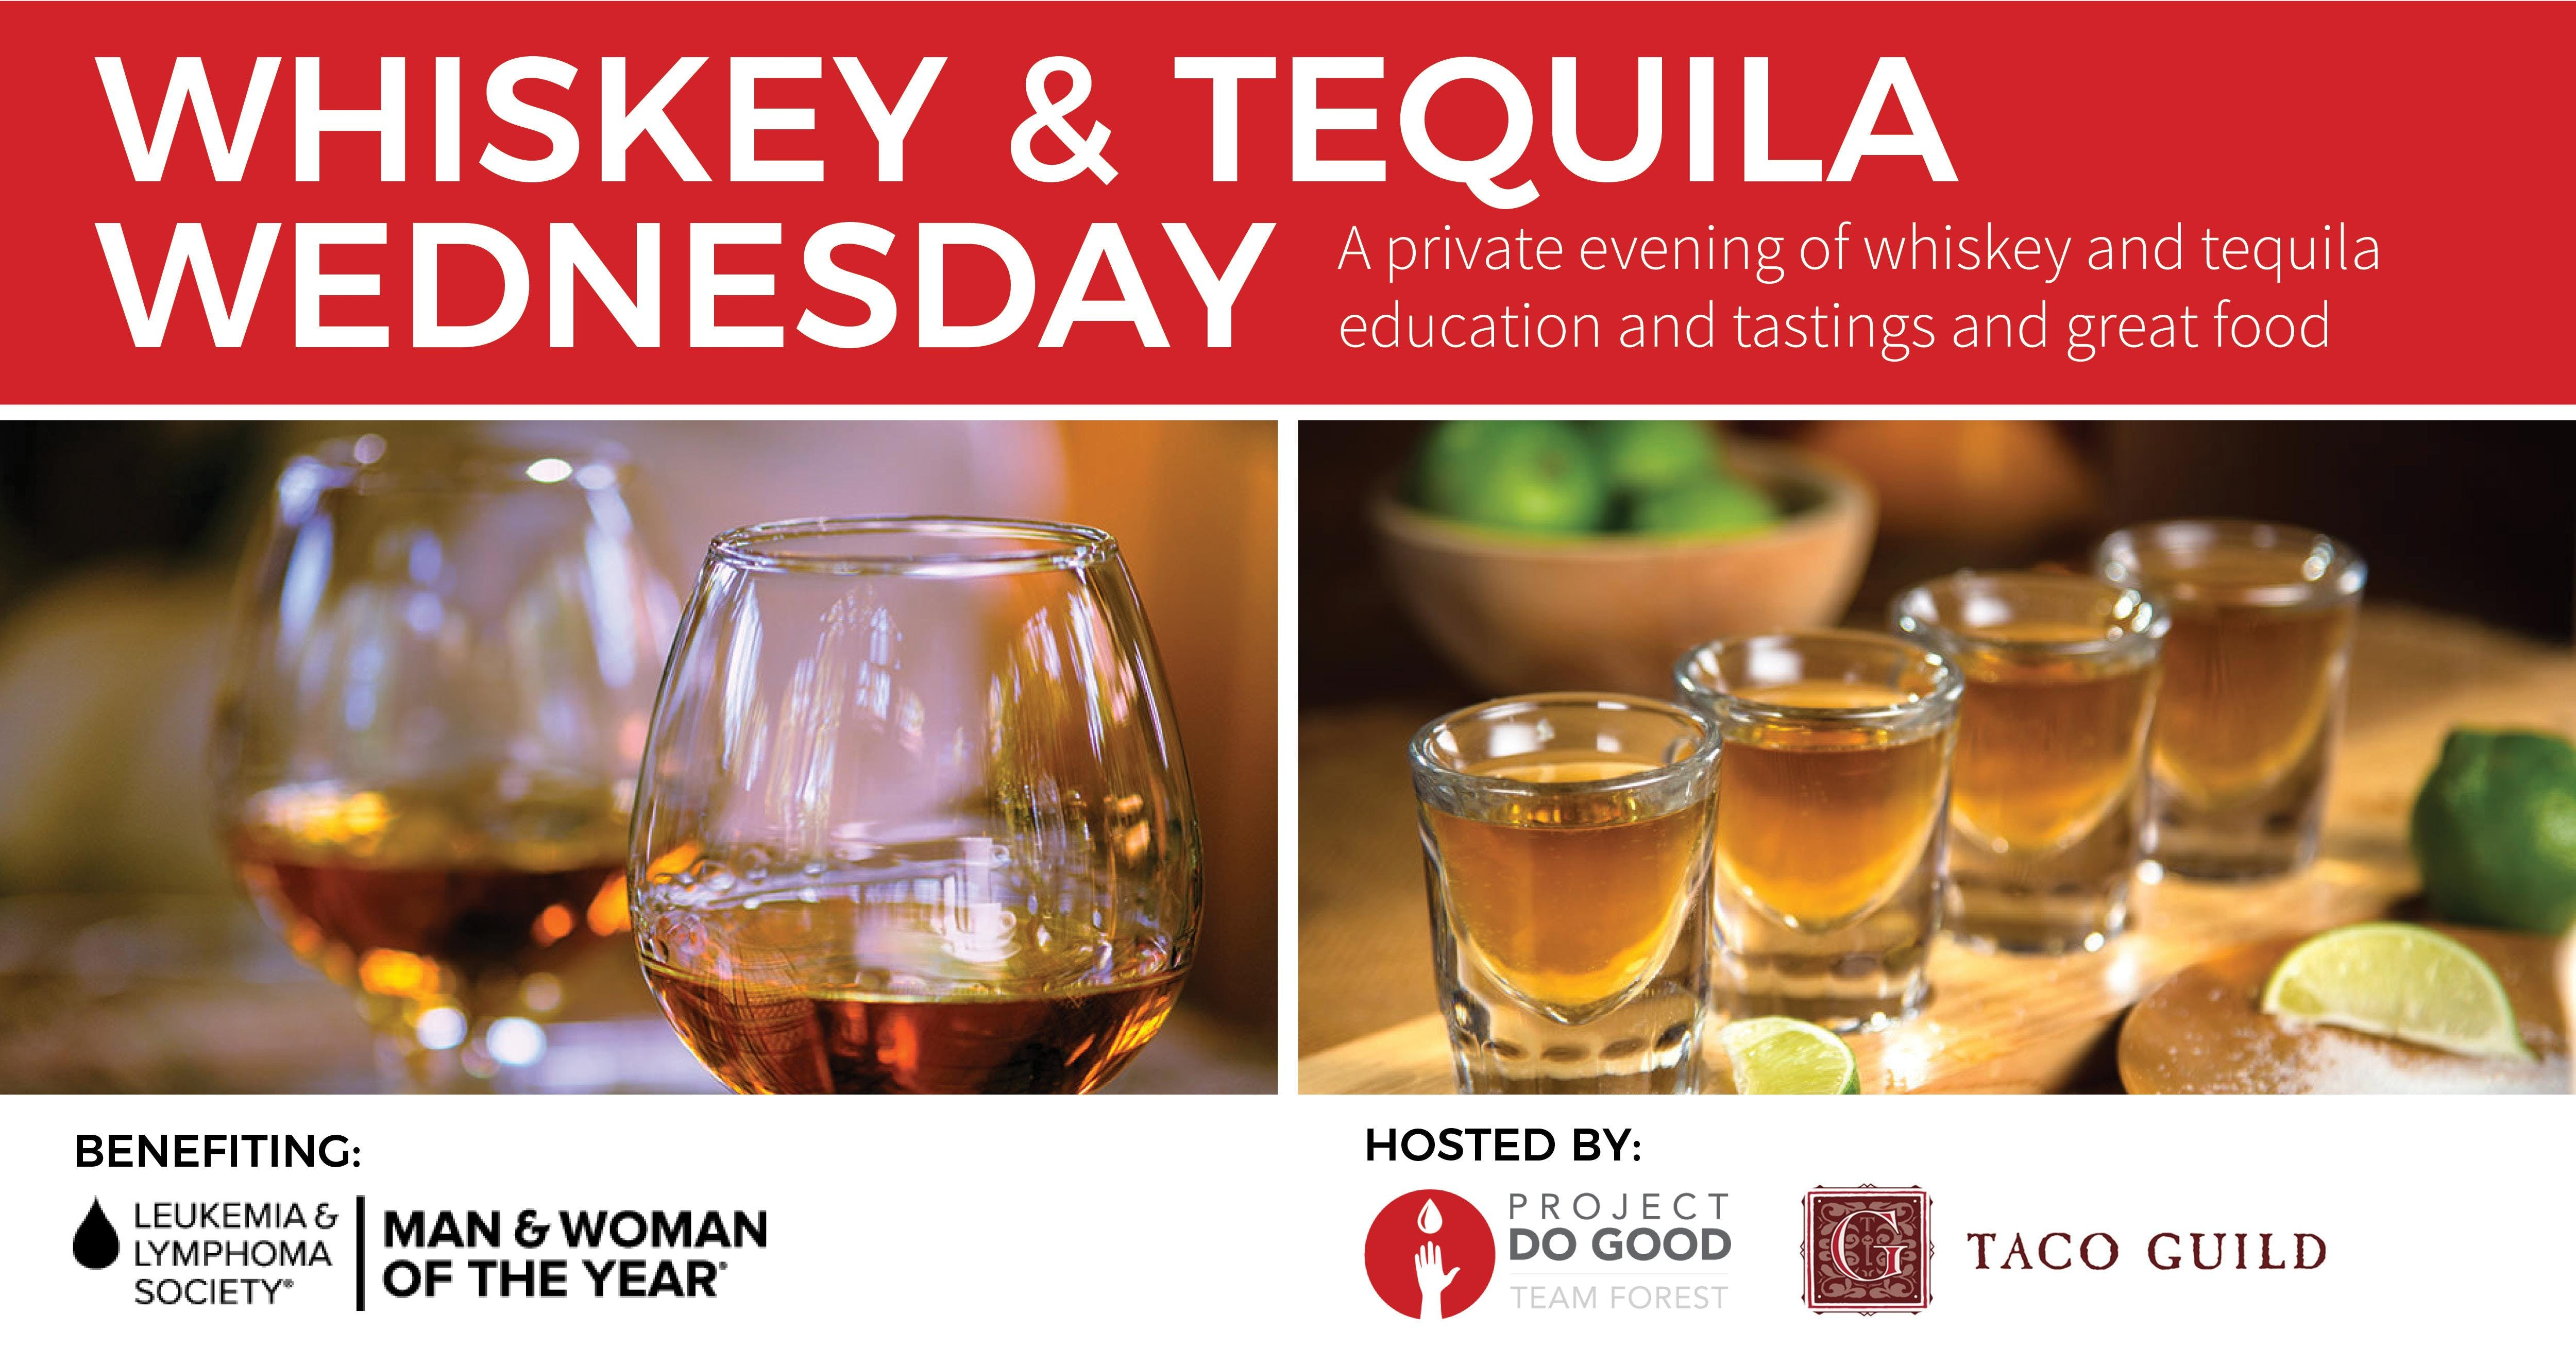 Whiskey & Tequila Wednesday